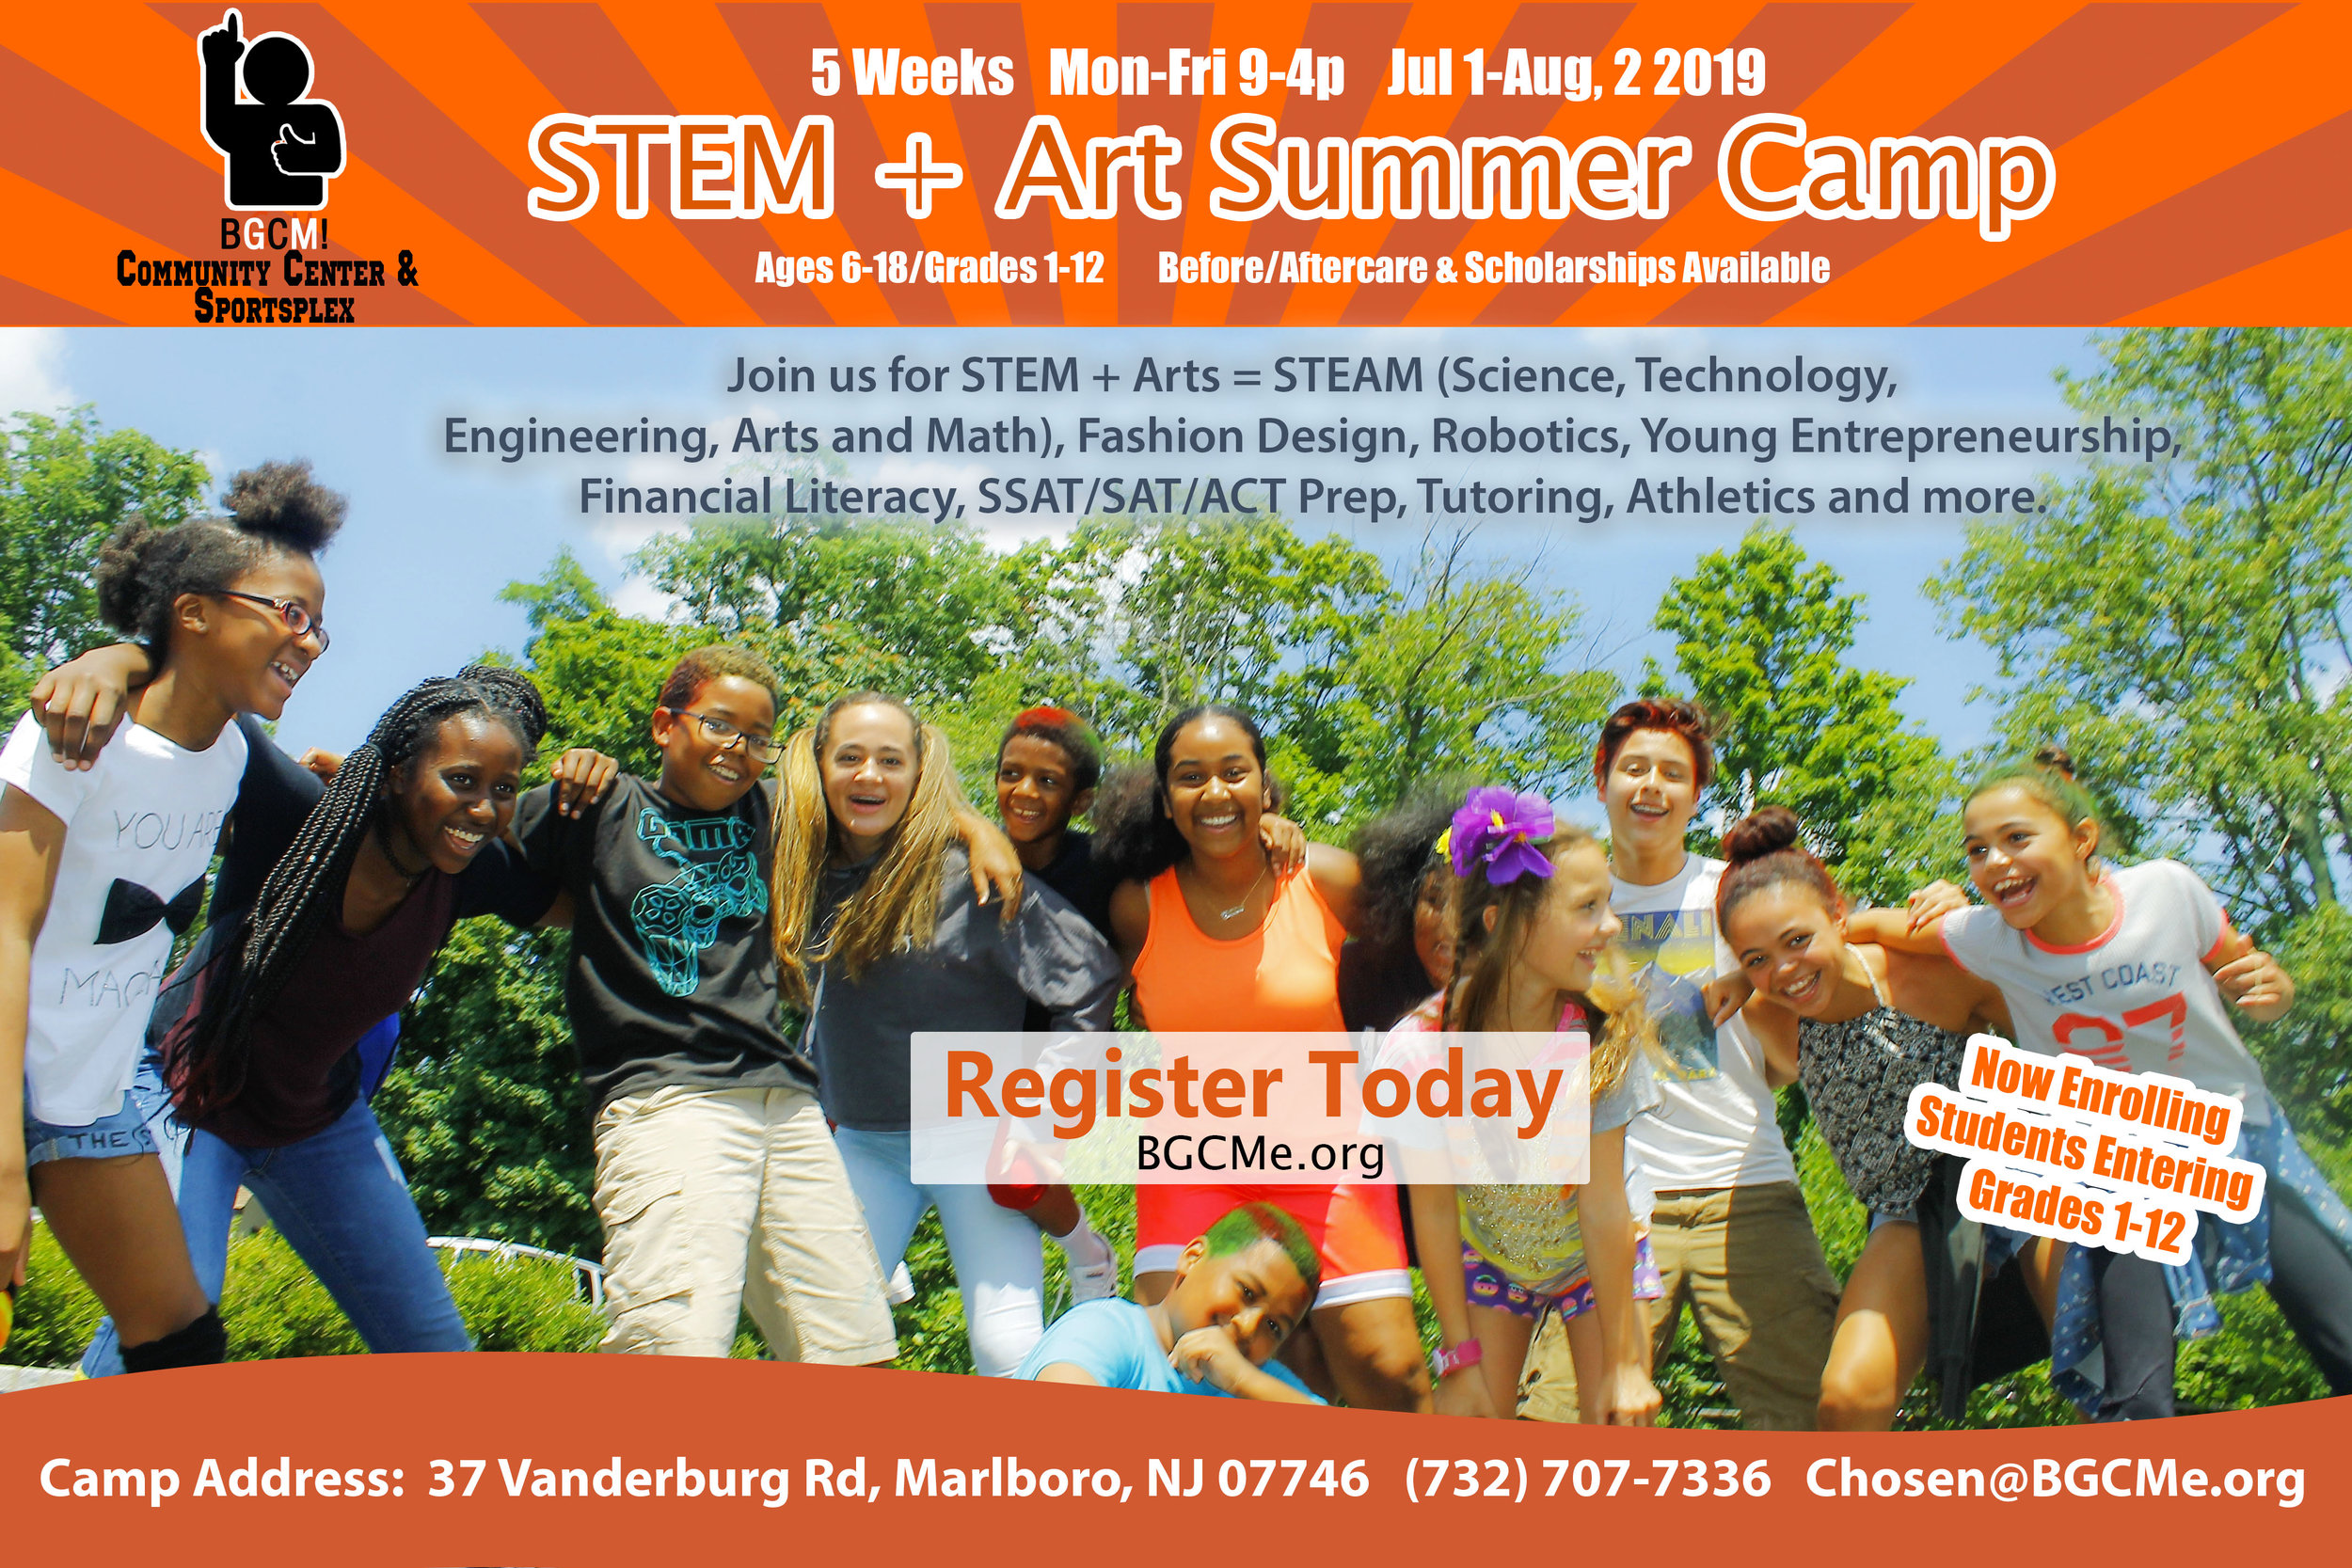 STEM + Arts Summer Camp Flyer